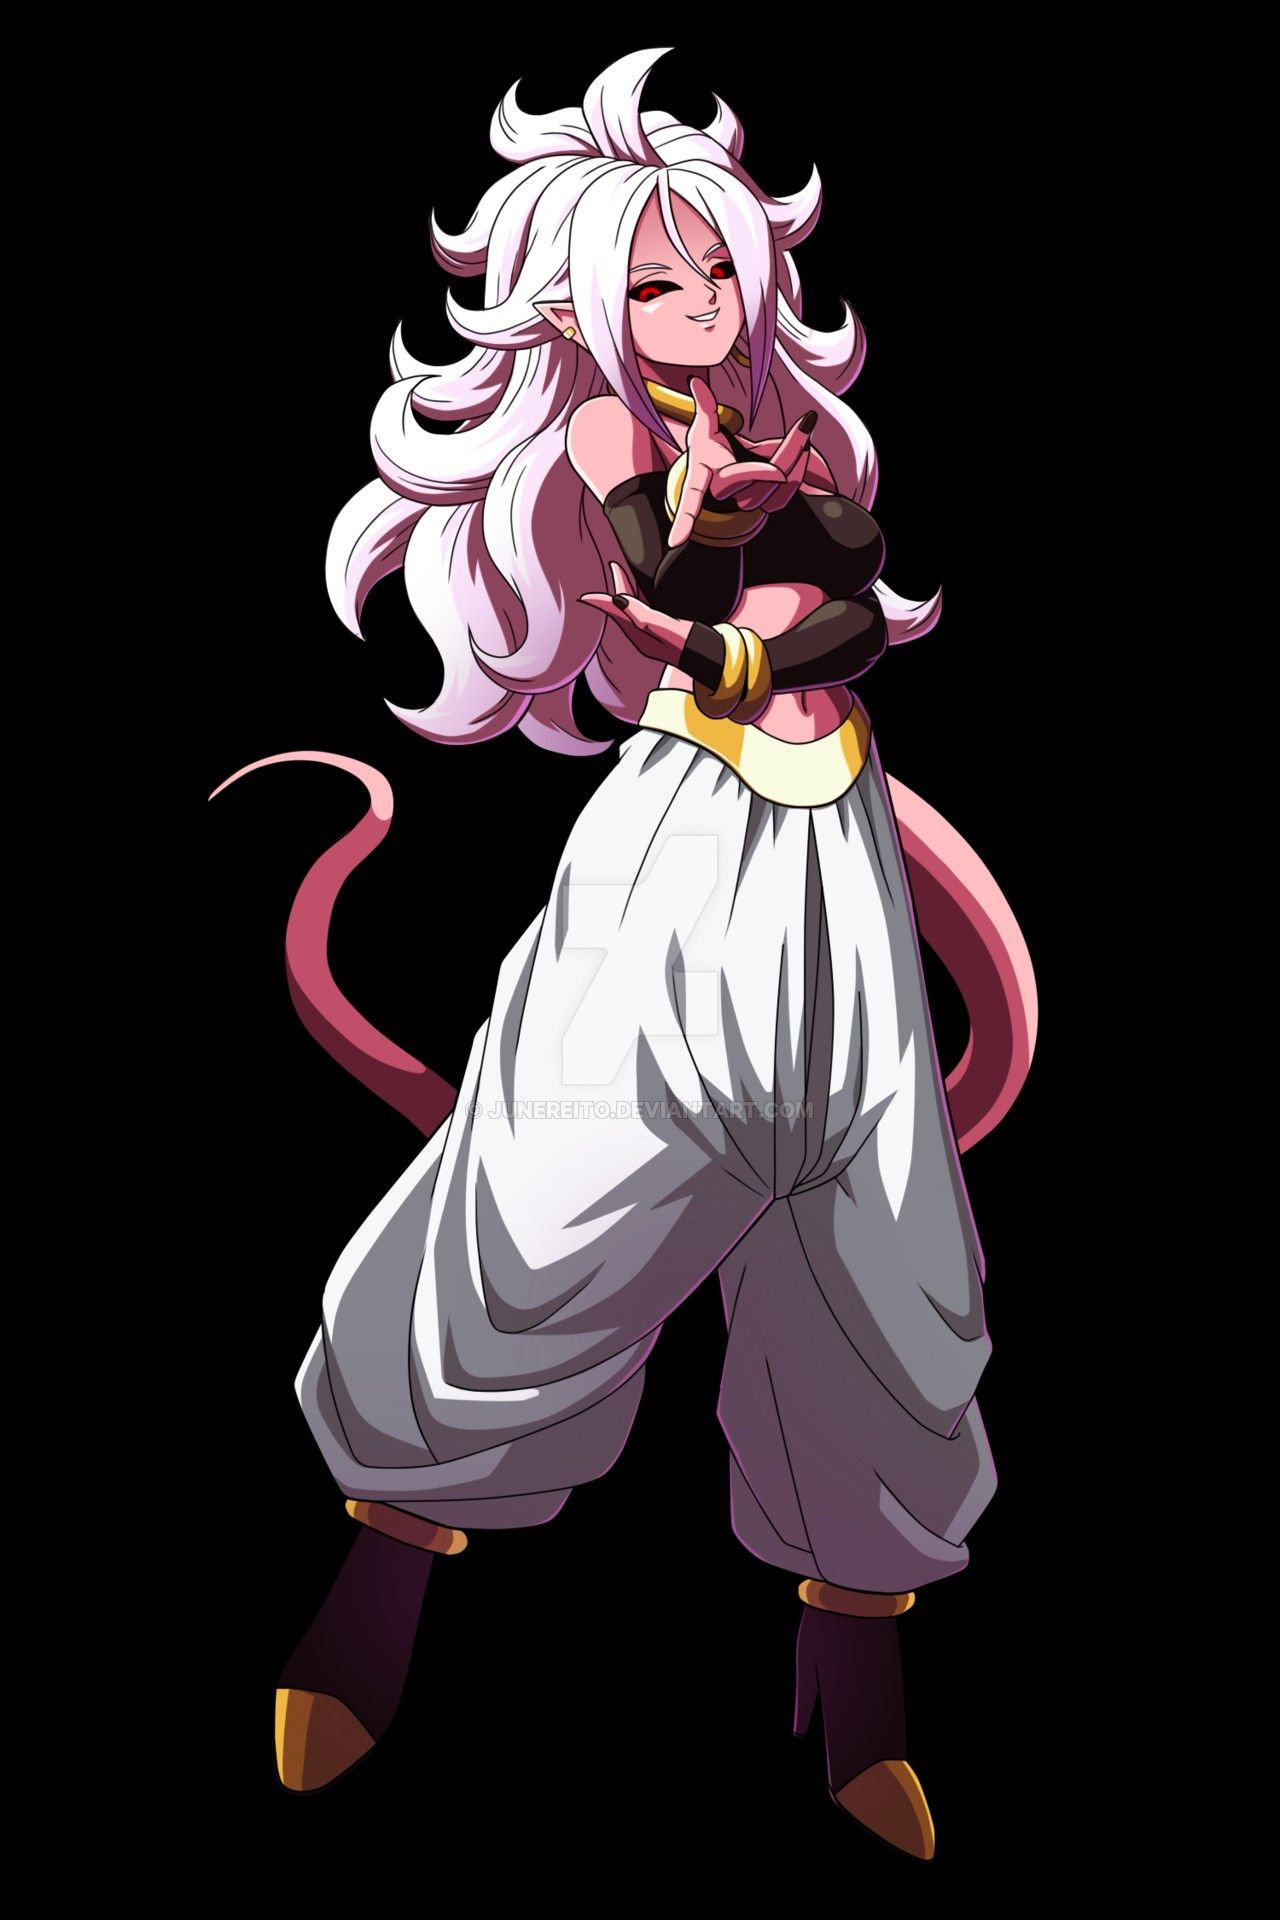 Majin android 21 dragon ball pinterest android - Dragon ball z 21 ...